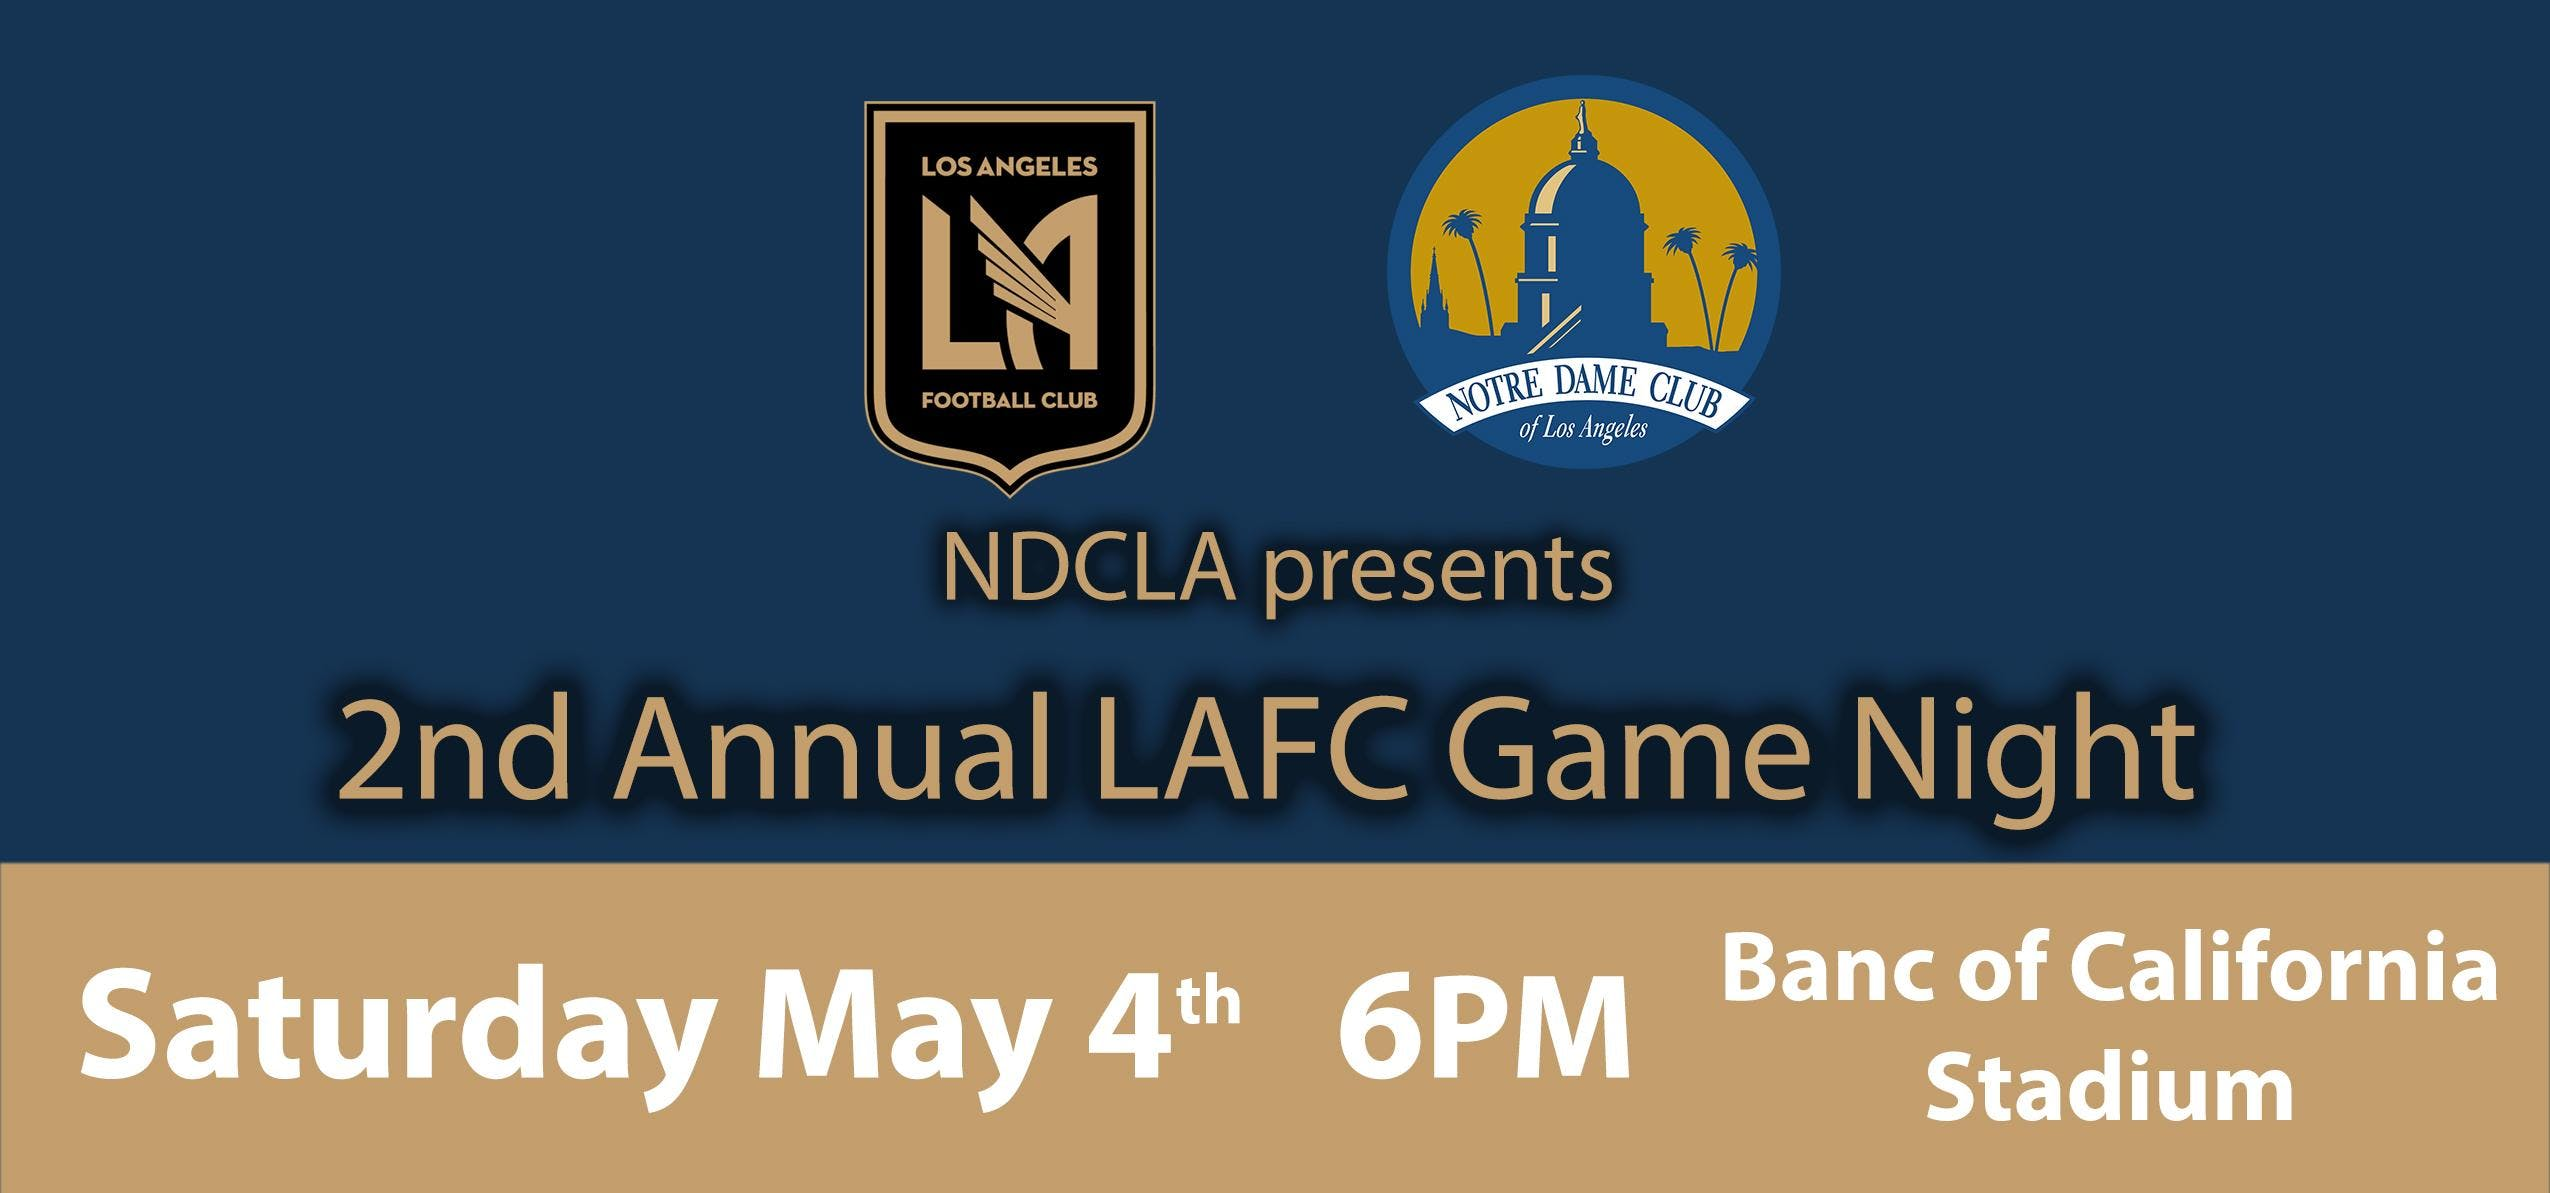 NDCLA presents the 2nd Annual LAFC Game Night